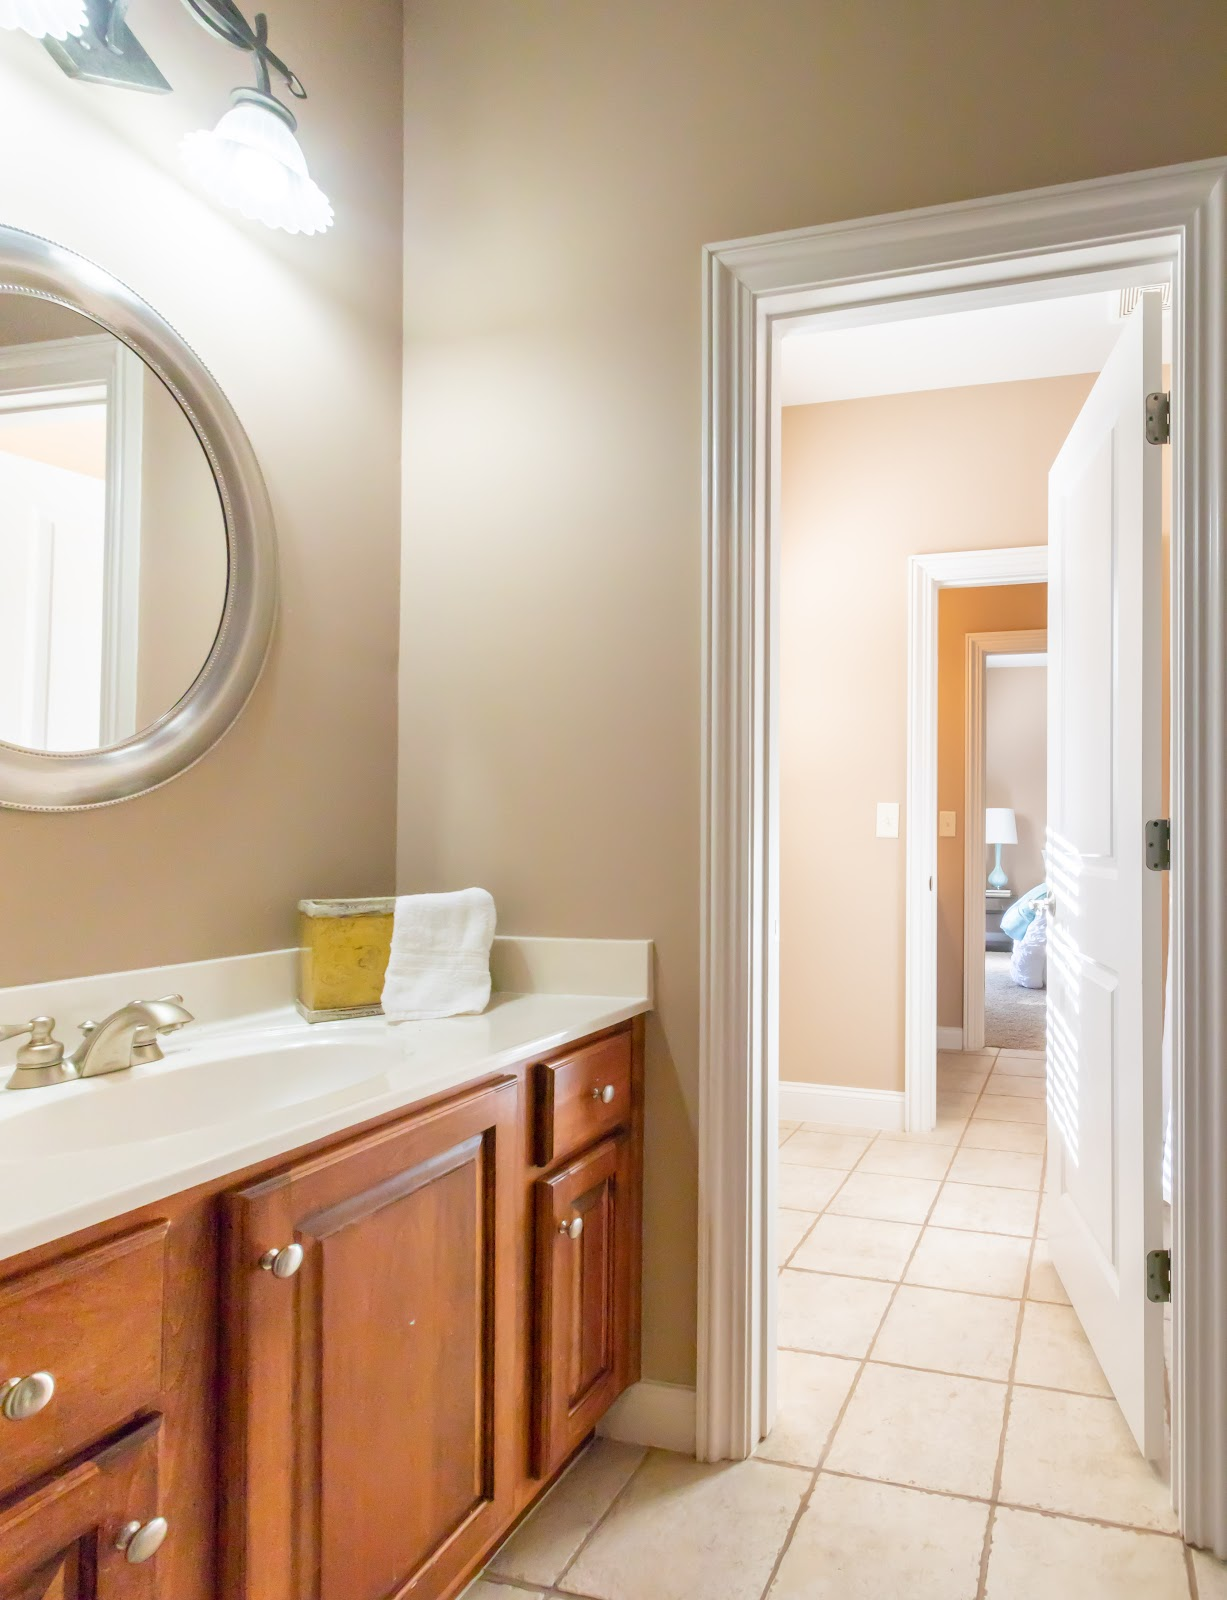 Mirrors help decorate a bathroom when staging